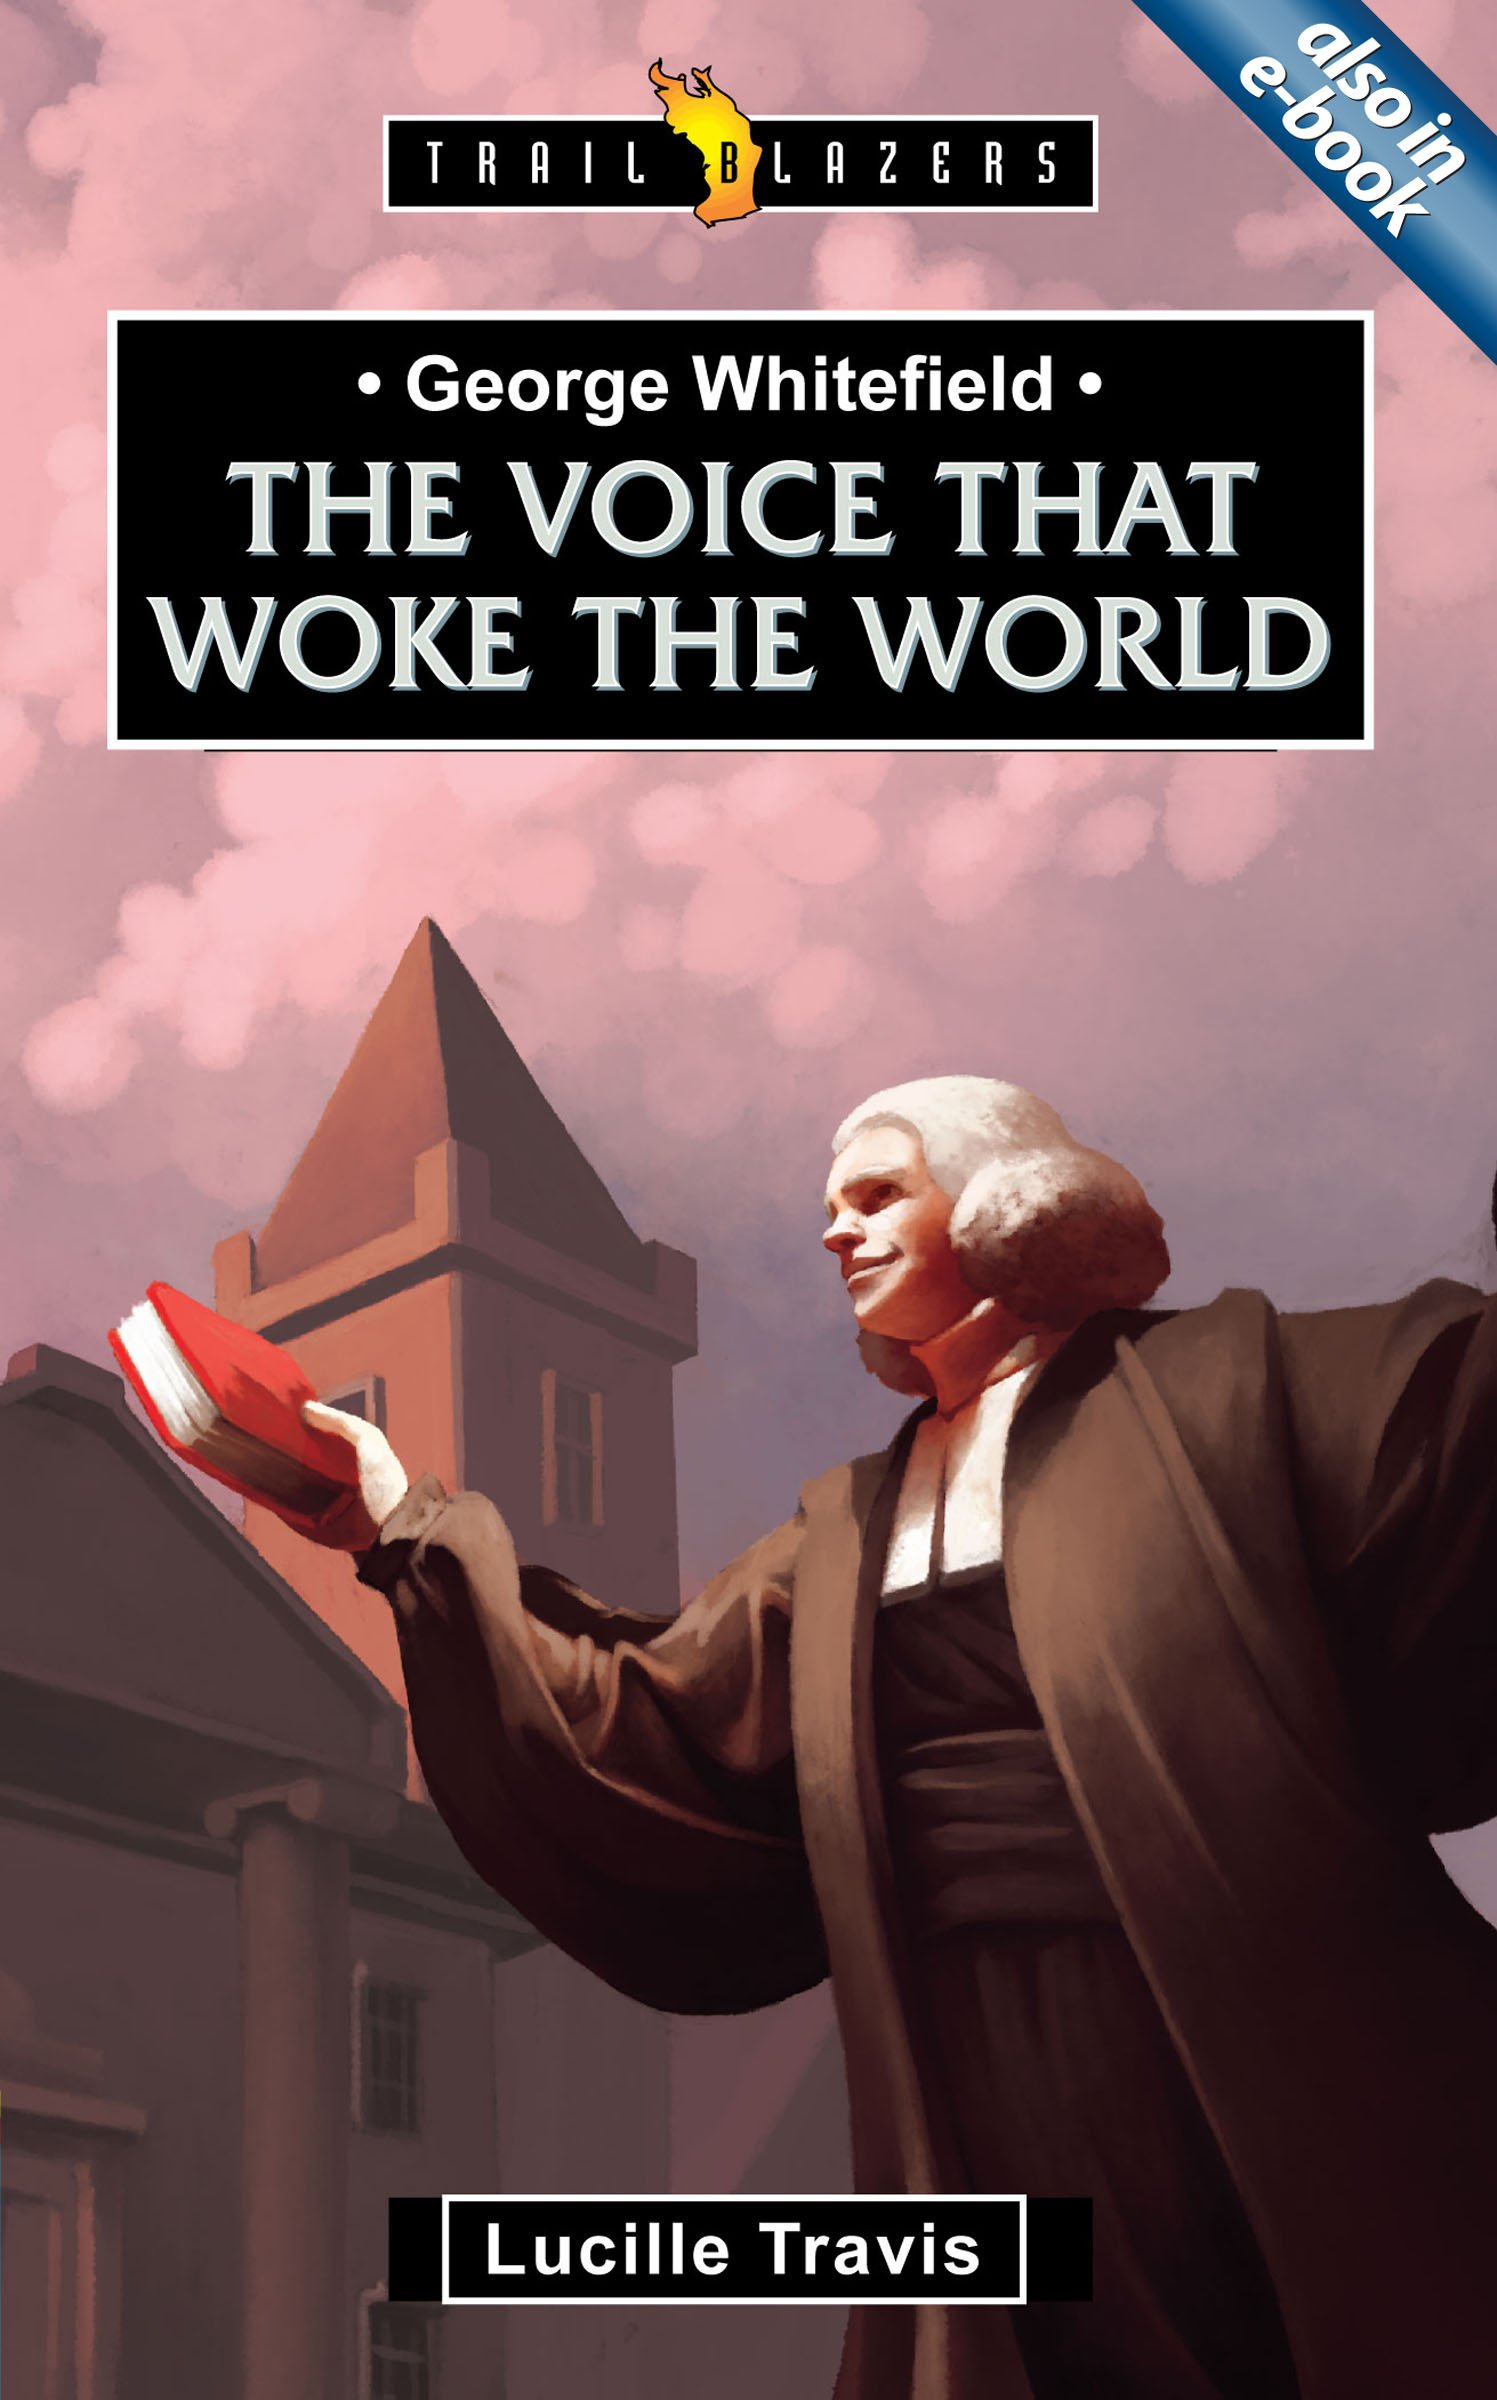 George Whitefield: Voice That Woke the World (Trail Blazers)